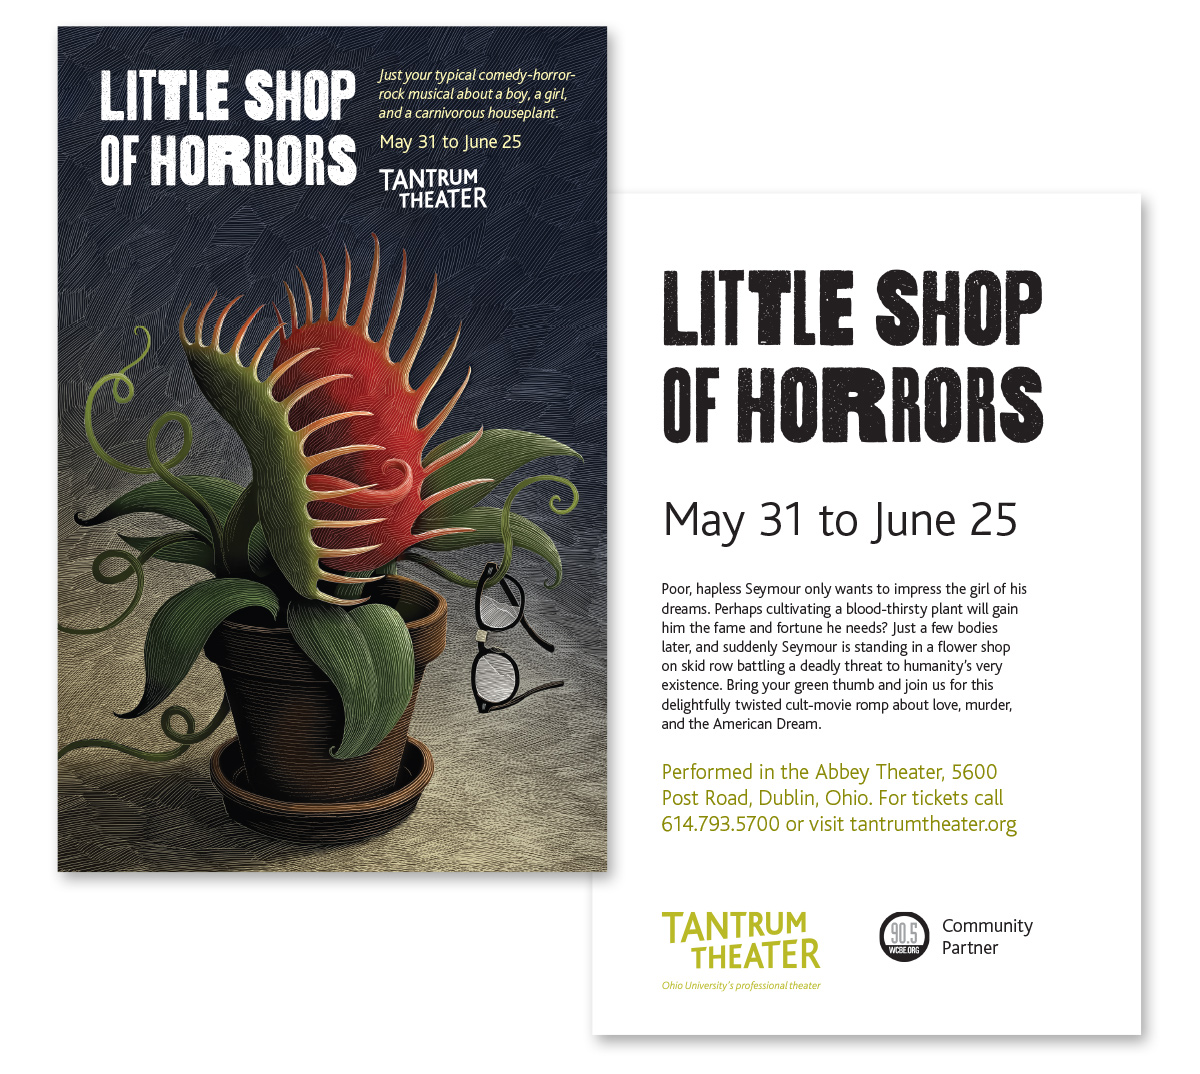 THEATRE-Tantrum-little-shop